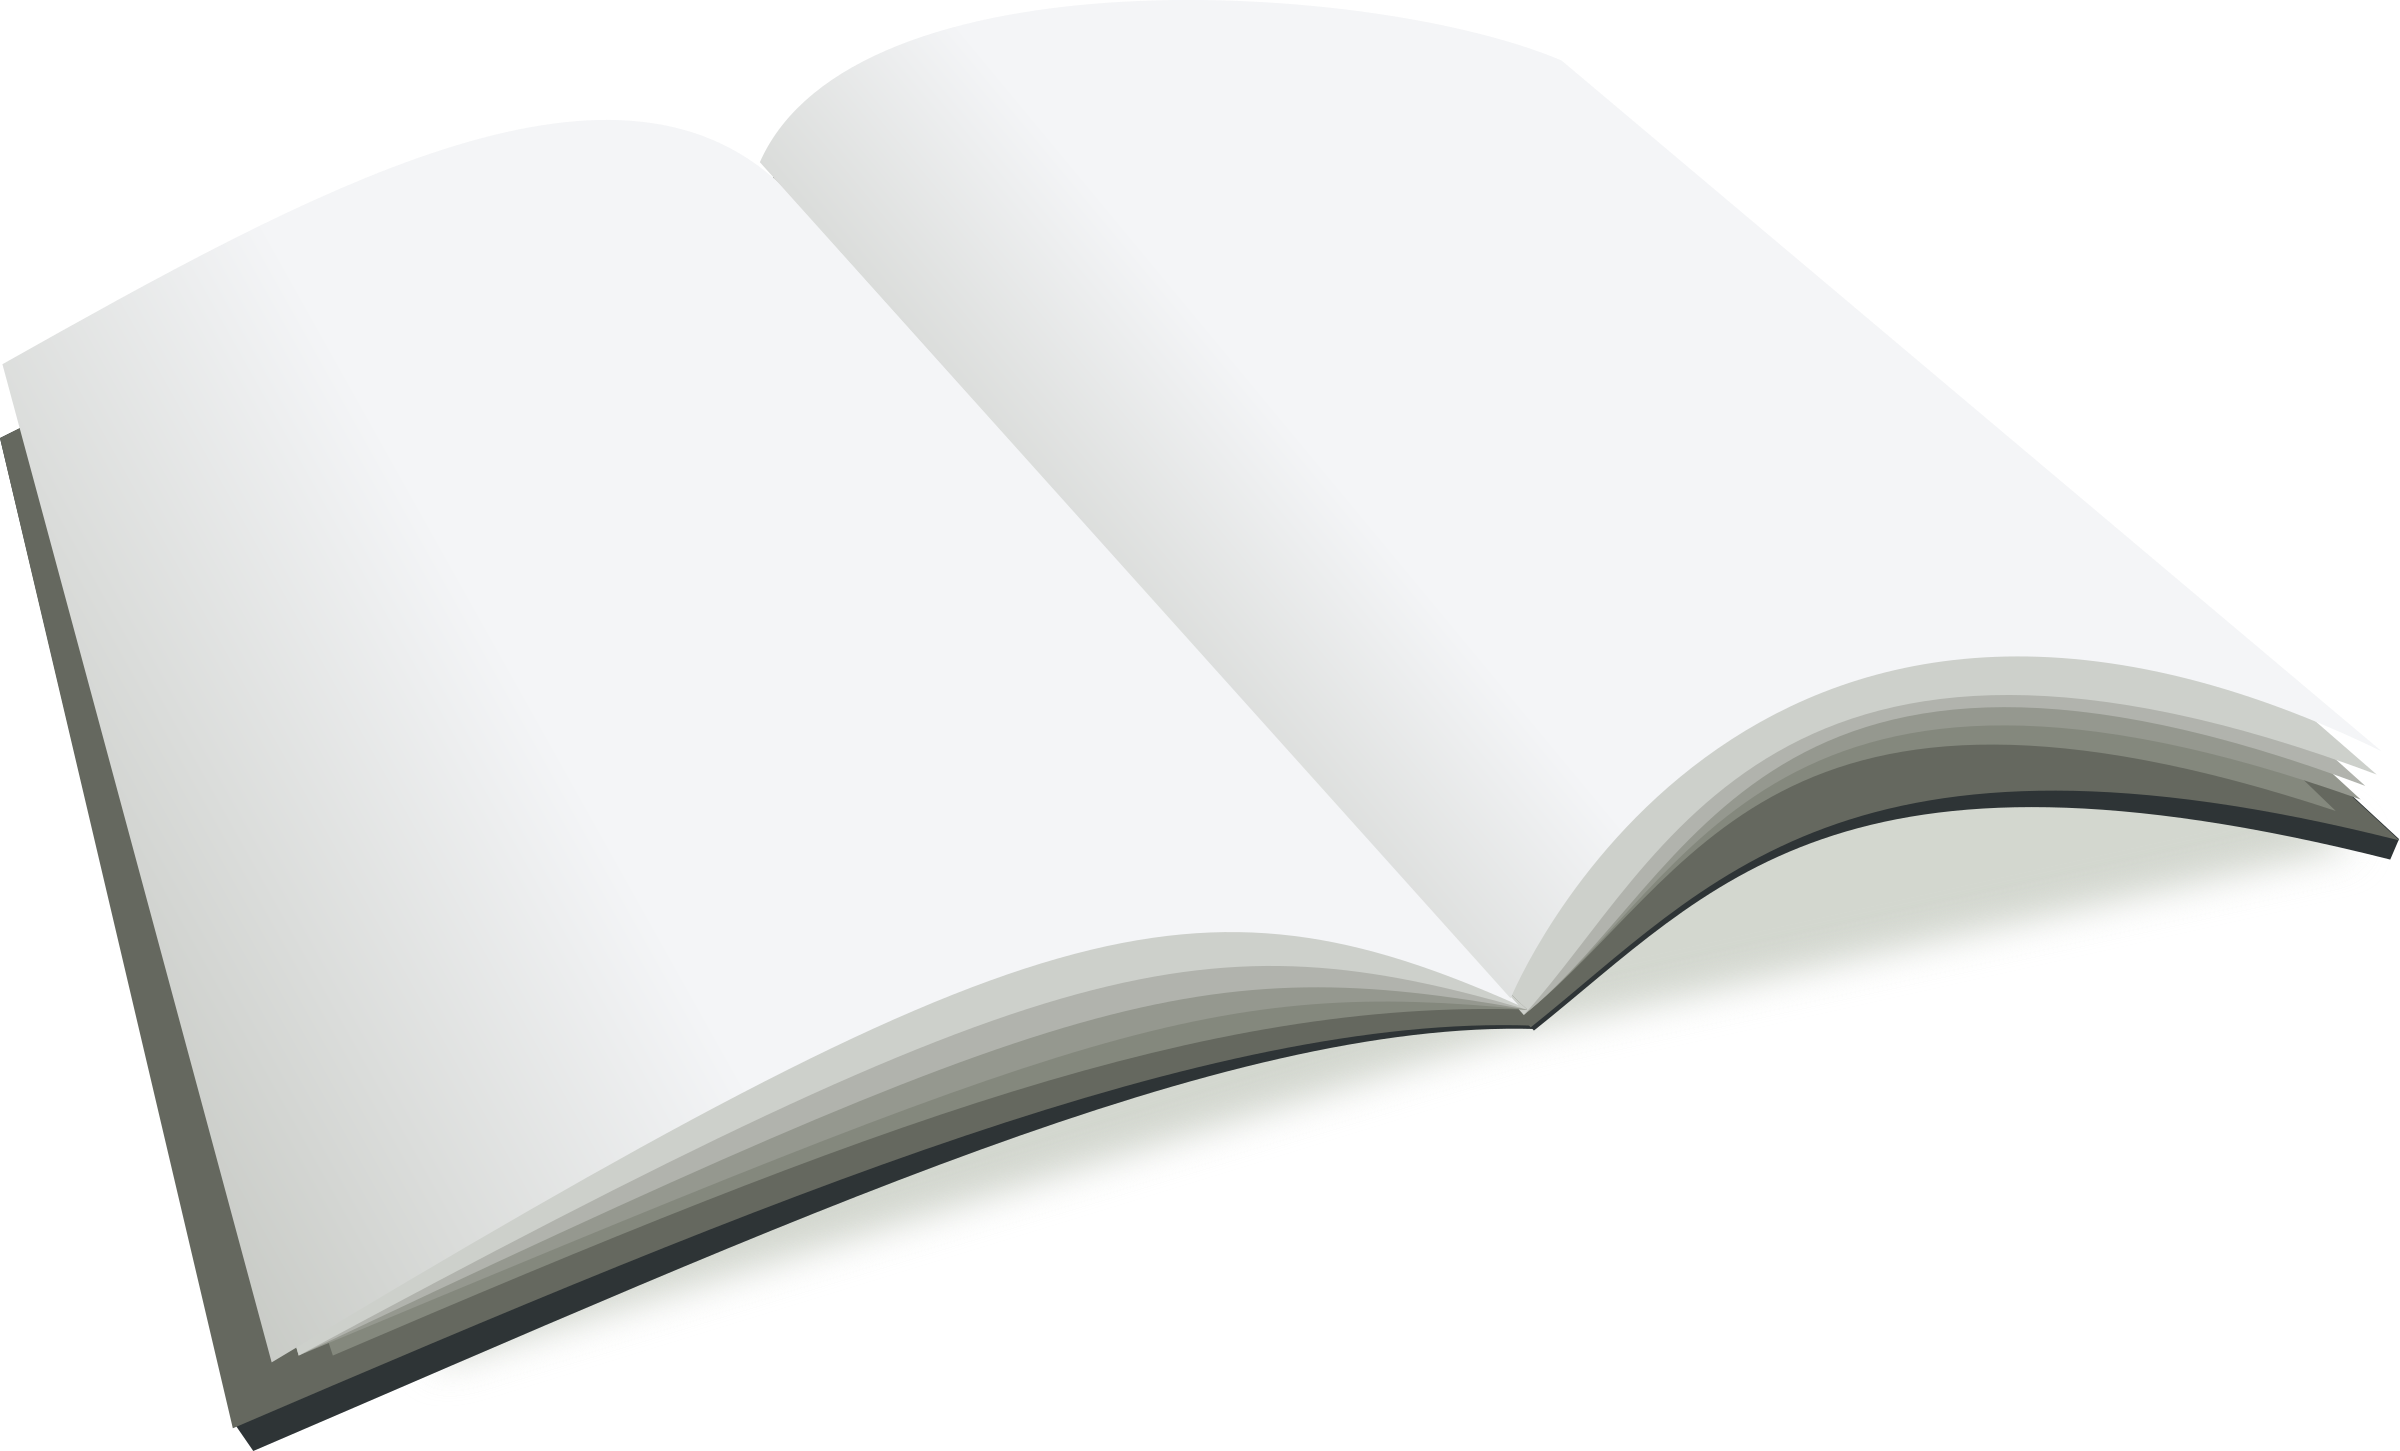 Blank book cover png. Open icons free and